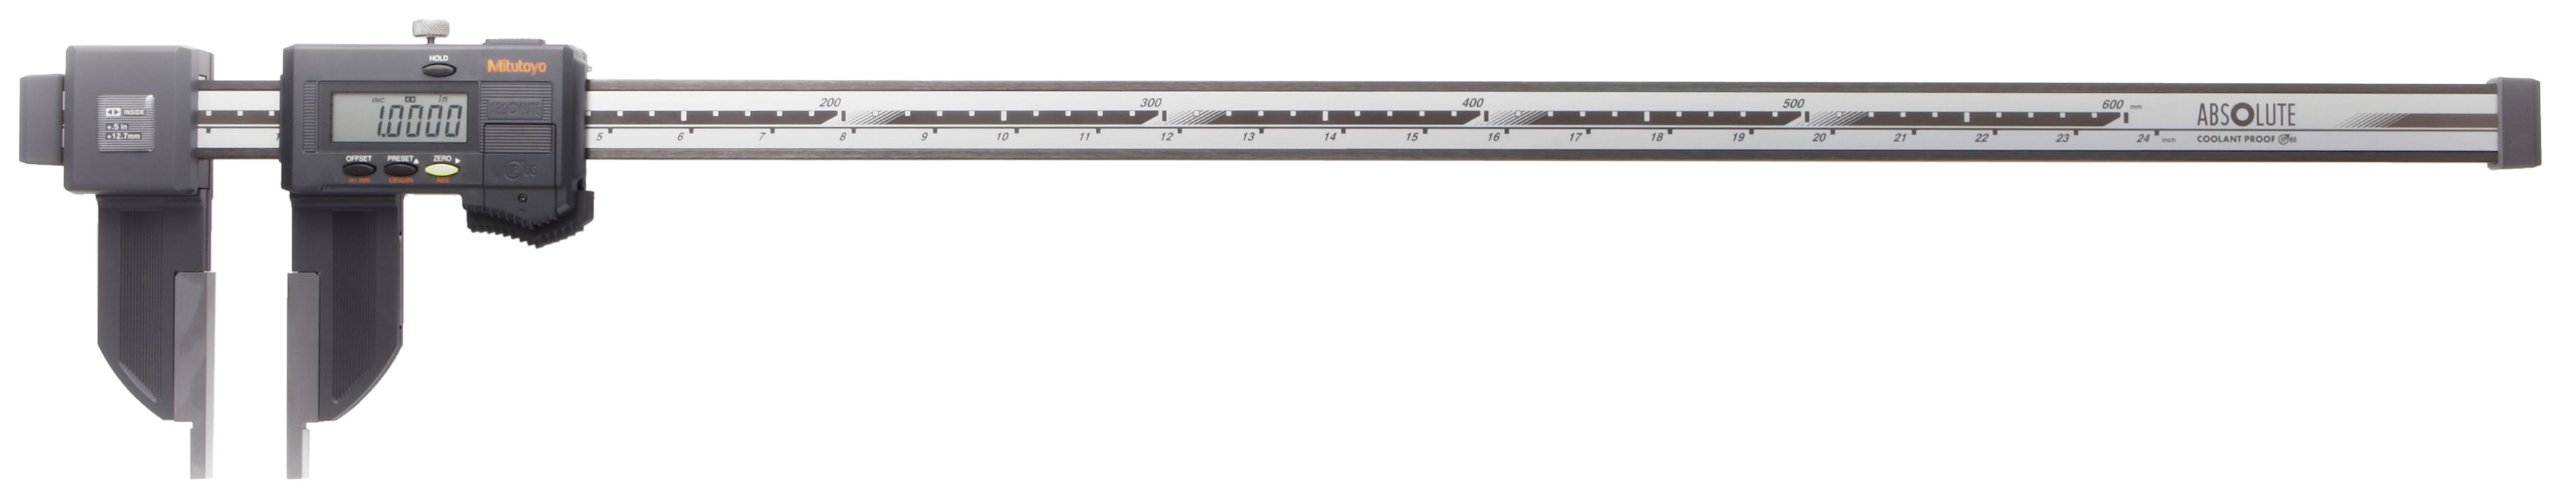 Mitutoyo ABSOLUTE 552-313-10 Digital Caliper, Stainless Steel, Battery Powered, Inch/Metric, Nib Style Jaw, 0-24'' Range, +/-0.025'' Accuracy, 0.0005'' Resolution, Meets IP66 Specifications